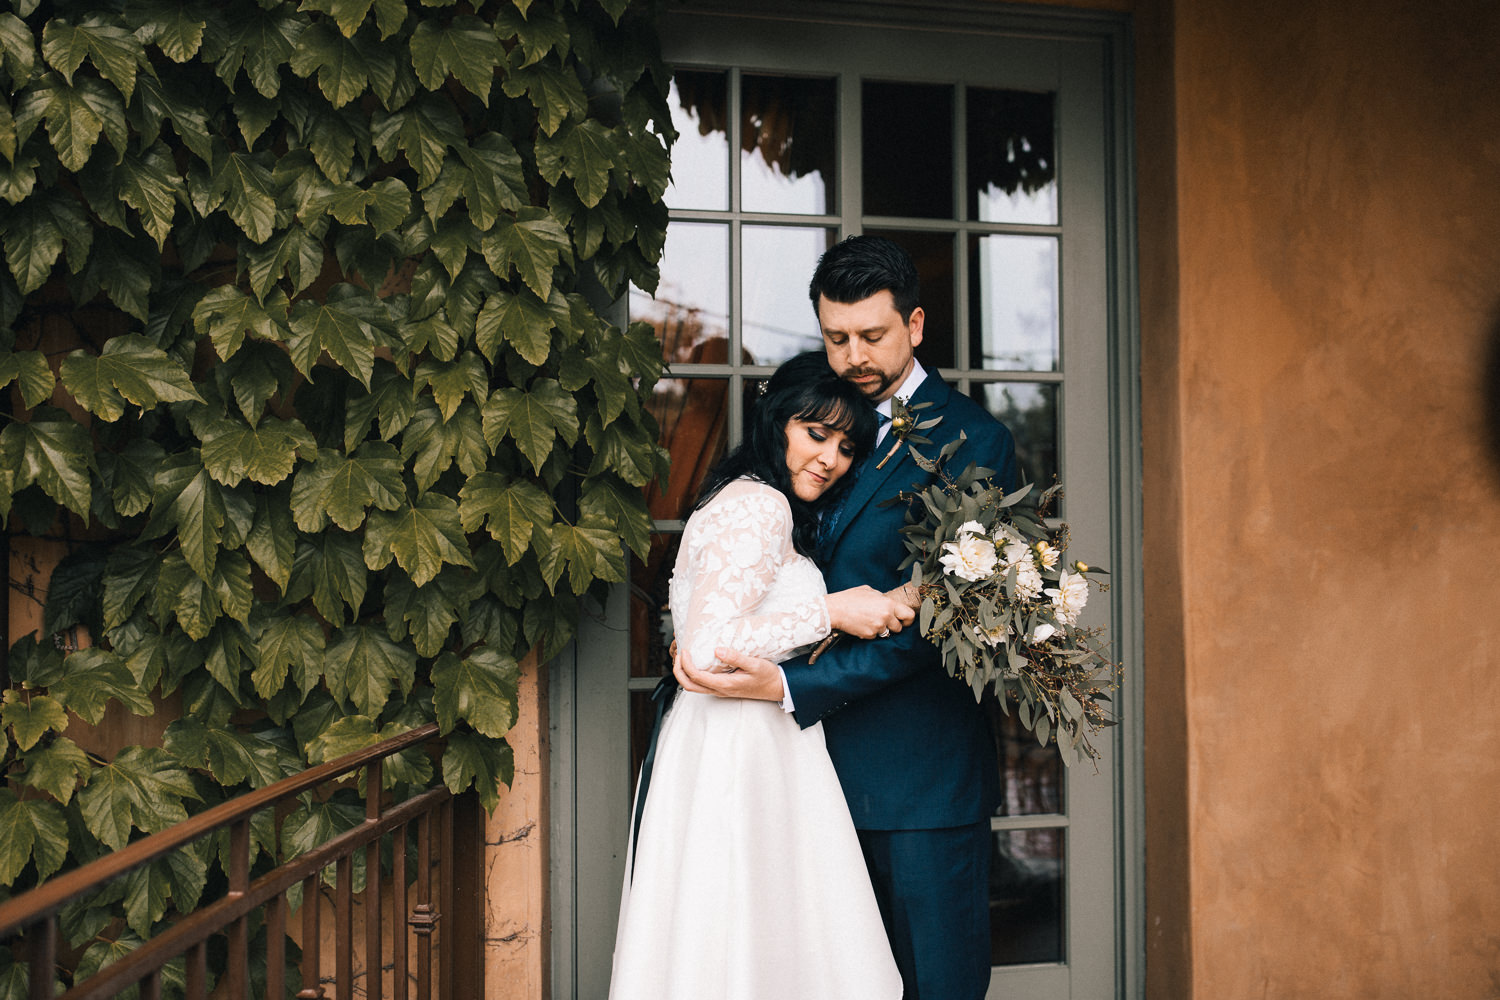 2019_05_ 182019.05.19 Lisa + Eddie South Bay Wedding Blog Photos Edited For Web 0079.jpg